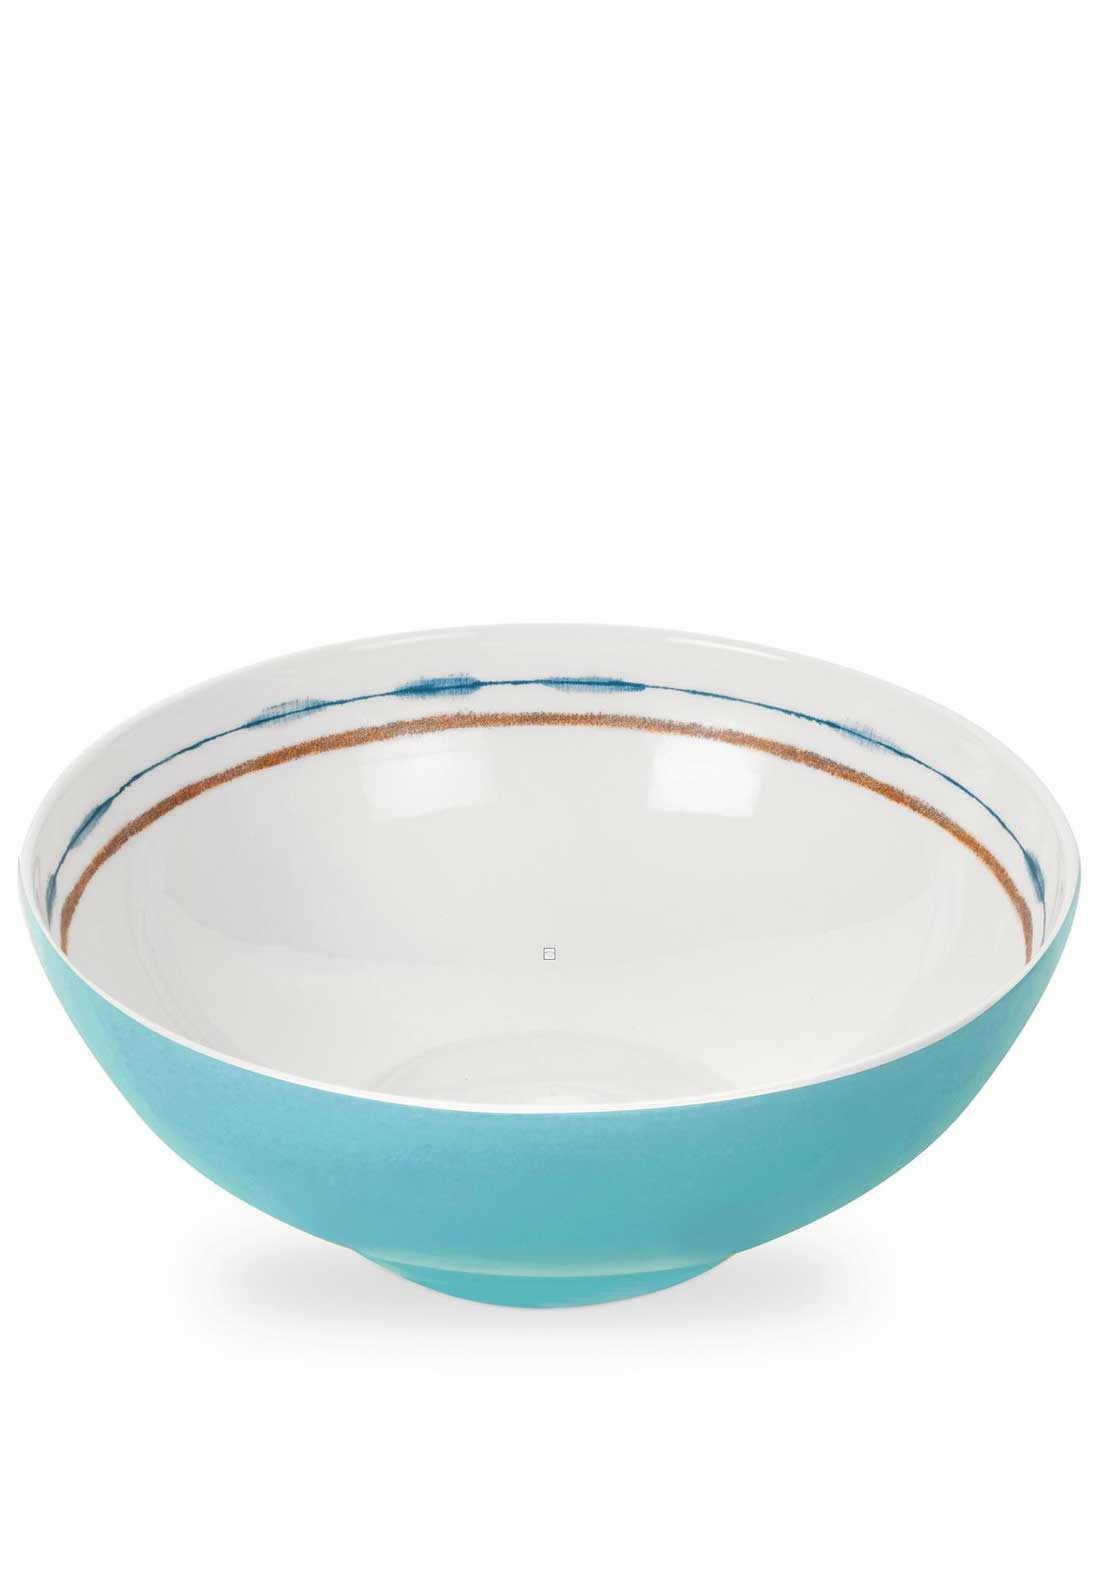 Portmeirion Coast Large Salad Bowl, Blue